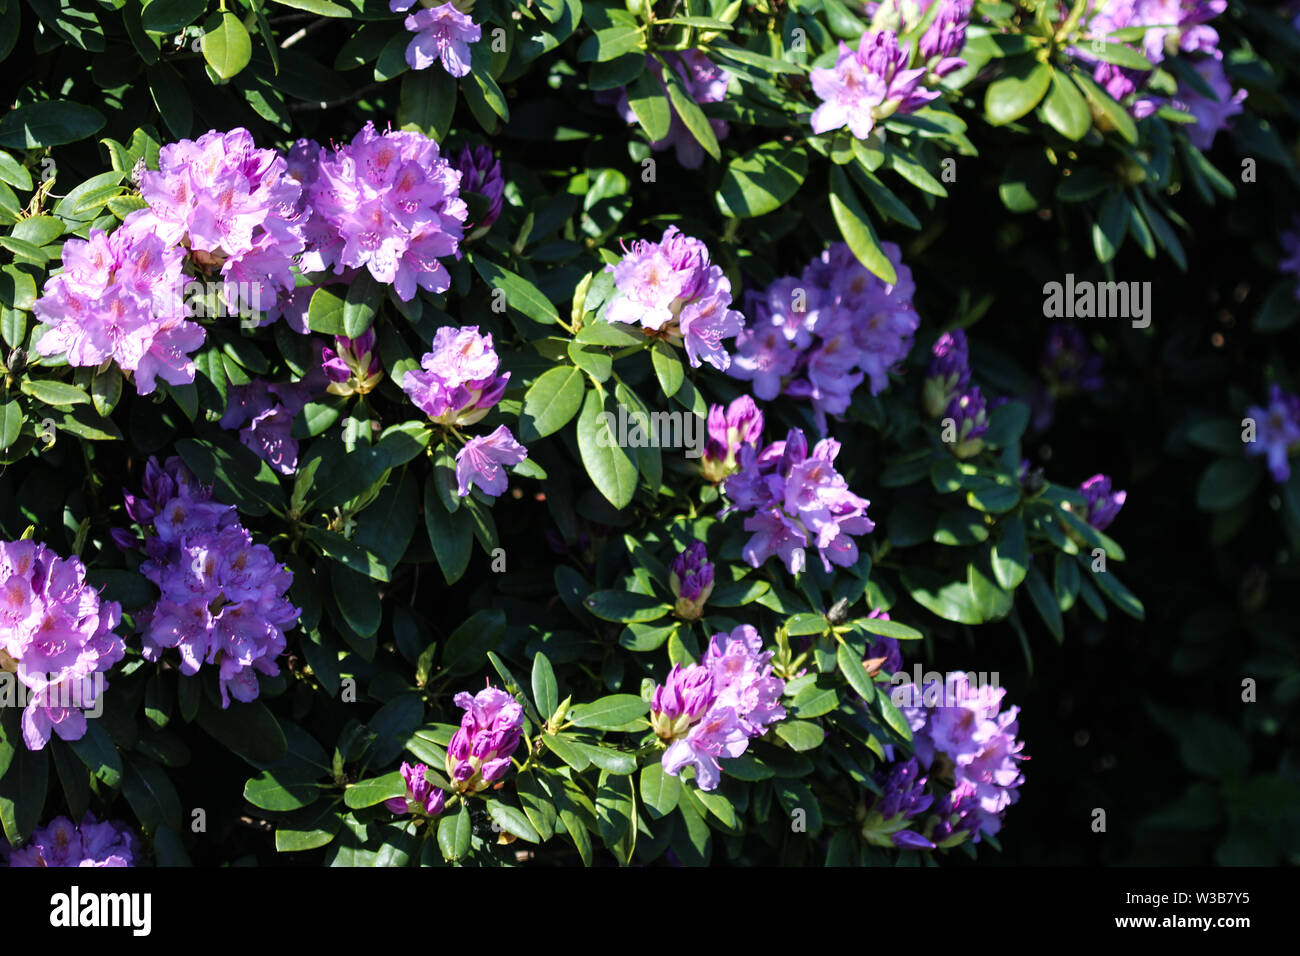 Close up of Catawba rosebay (Rhododendron catawbiense) flower blooming - Stock Image